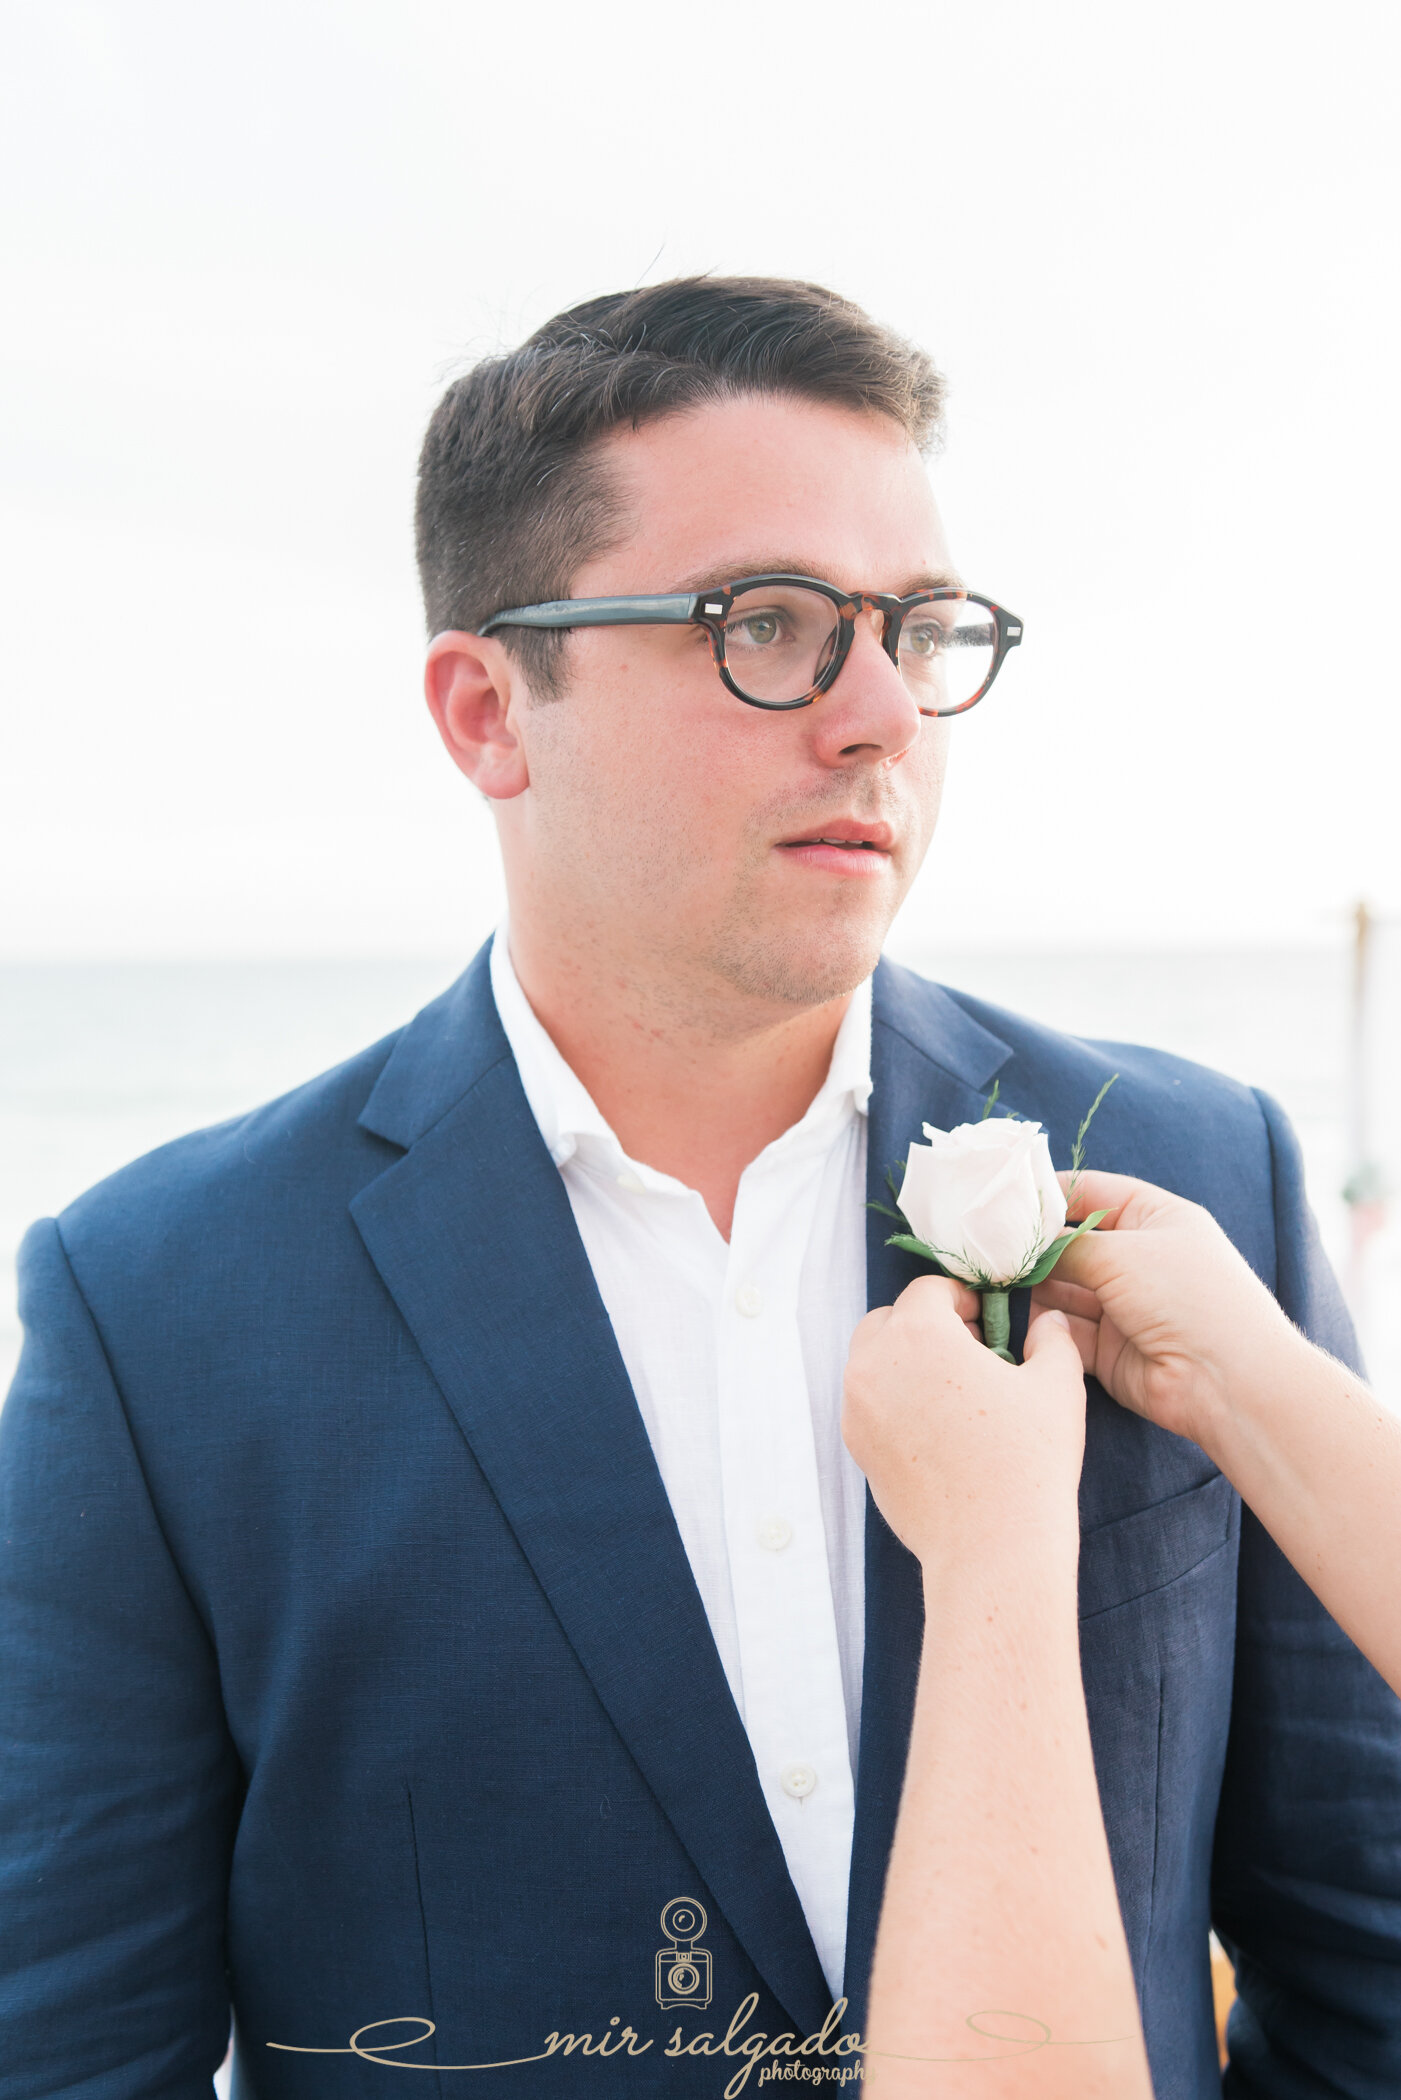 groom-attire, groom-outfit, groom-boutonnière, groom-getting-ready-for-wedding